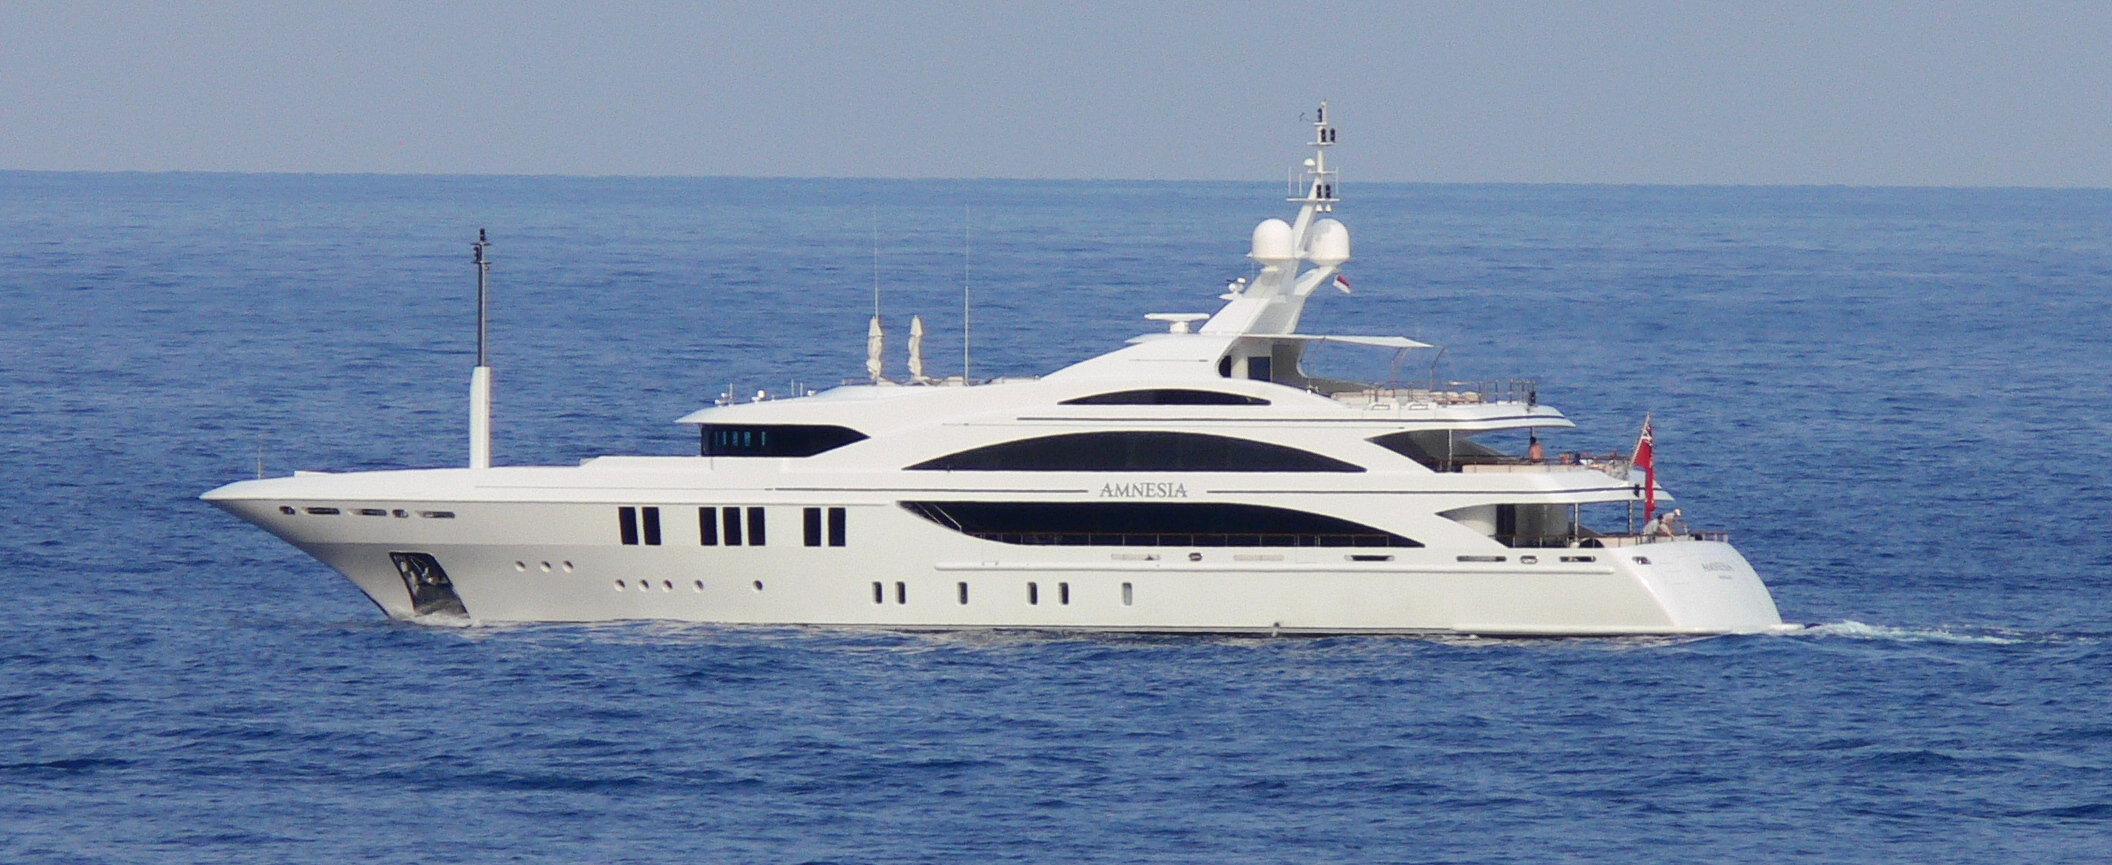 Luxury yachts for sale motor yachts sailing yachts autos for Luxury motor yachts for sale